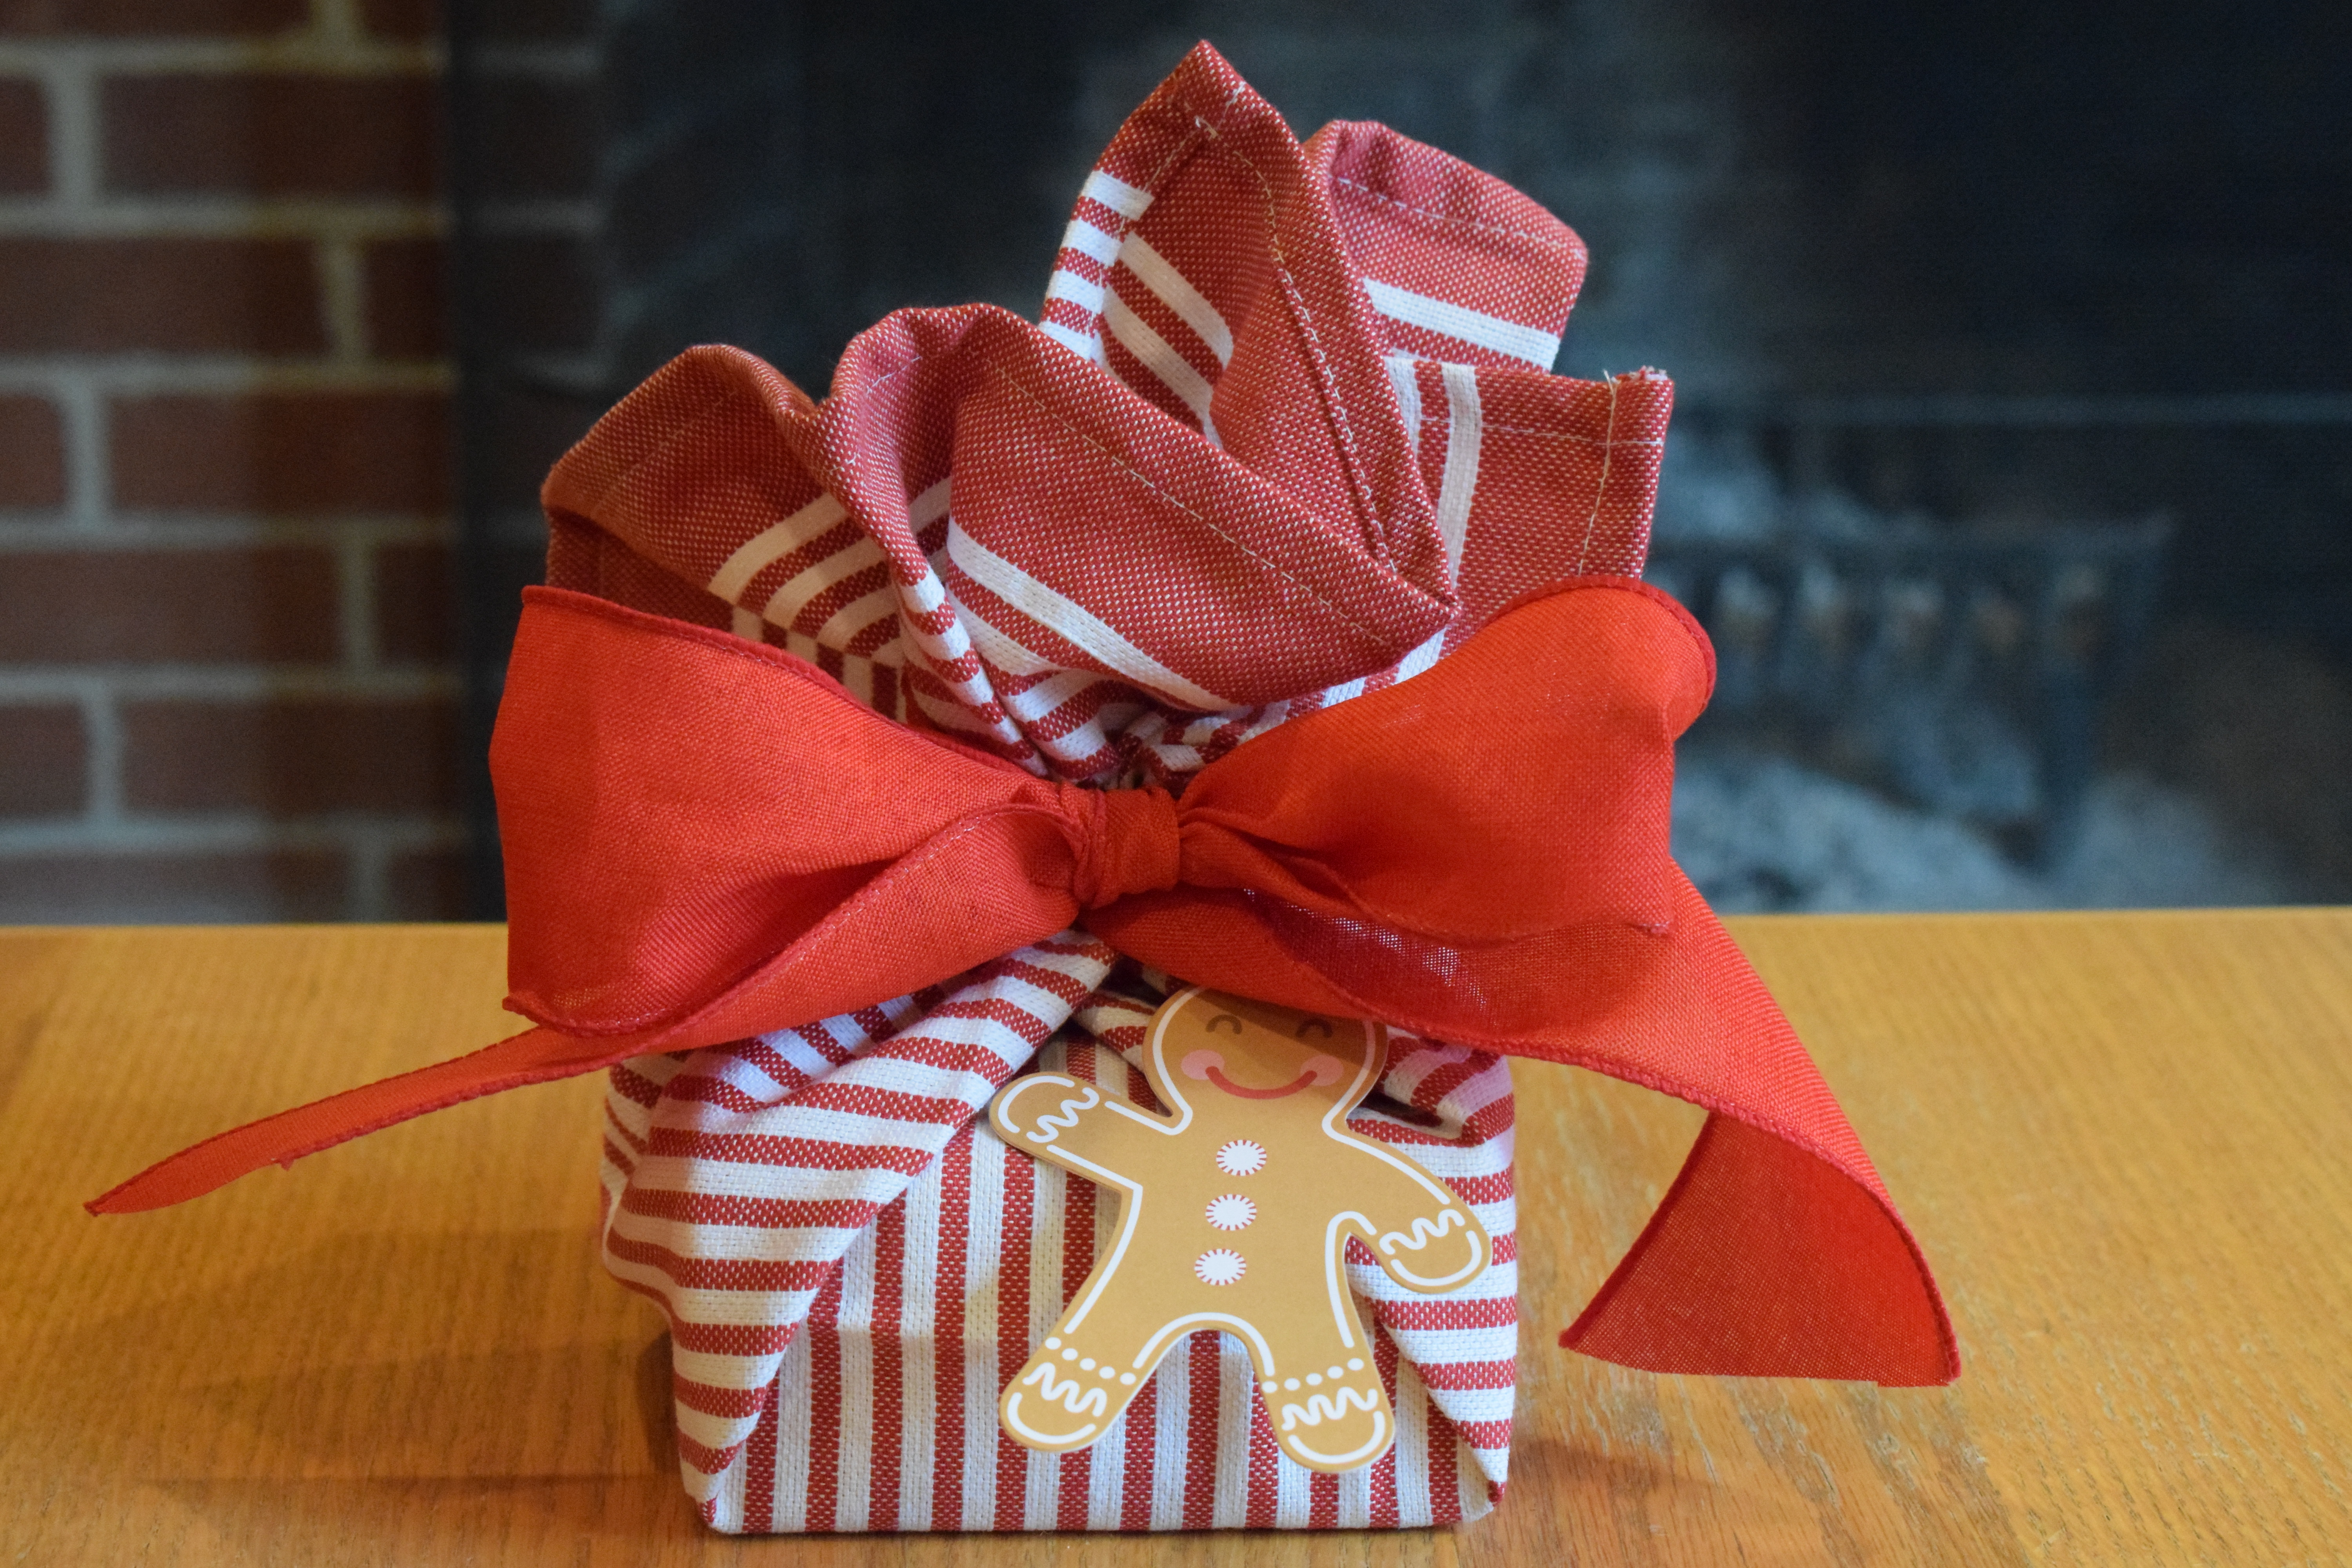 How to Wrap Gifts in Kitchen Towels Step Three Tie Ribbon, Reusable Gift Wrapping